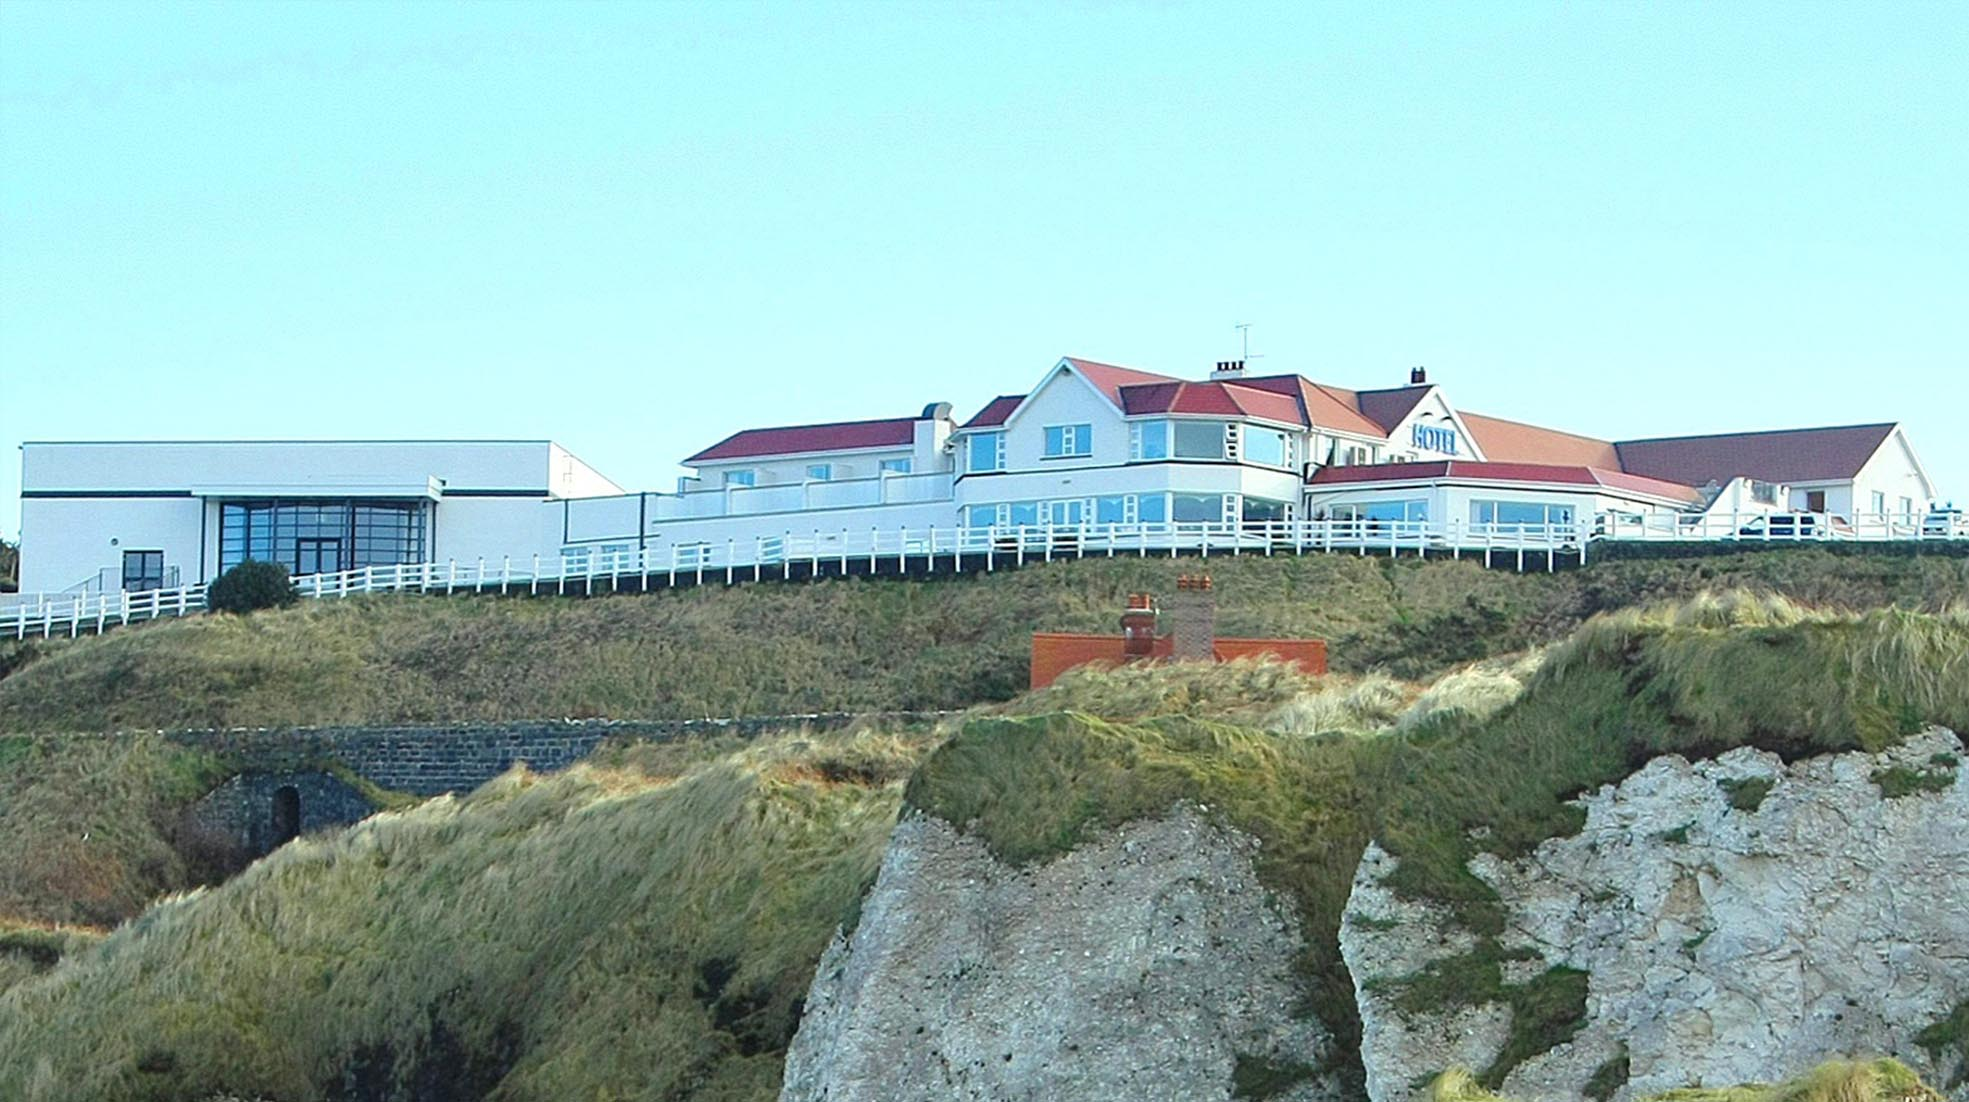 Royal court Cliff beach